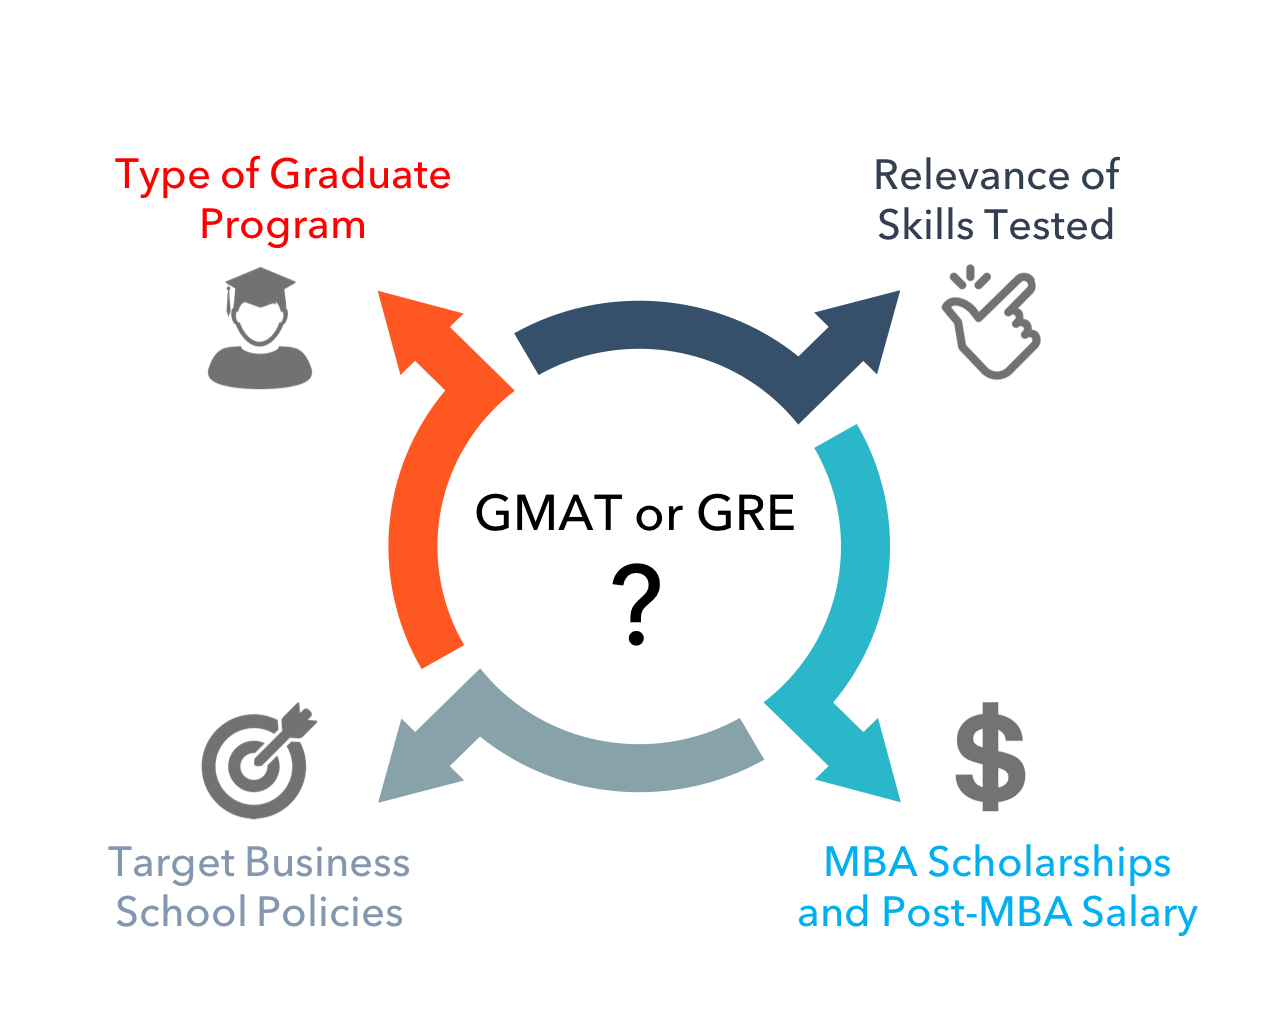 gmat or gre for mba